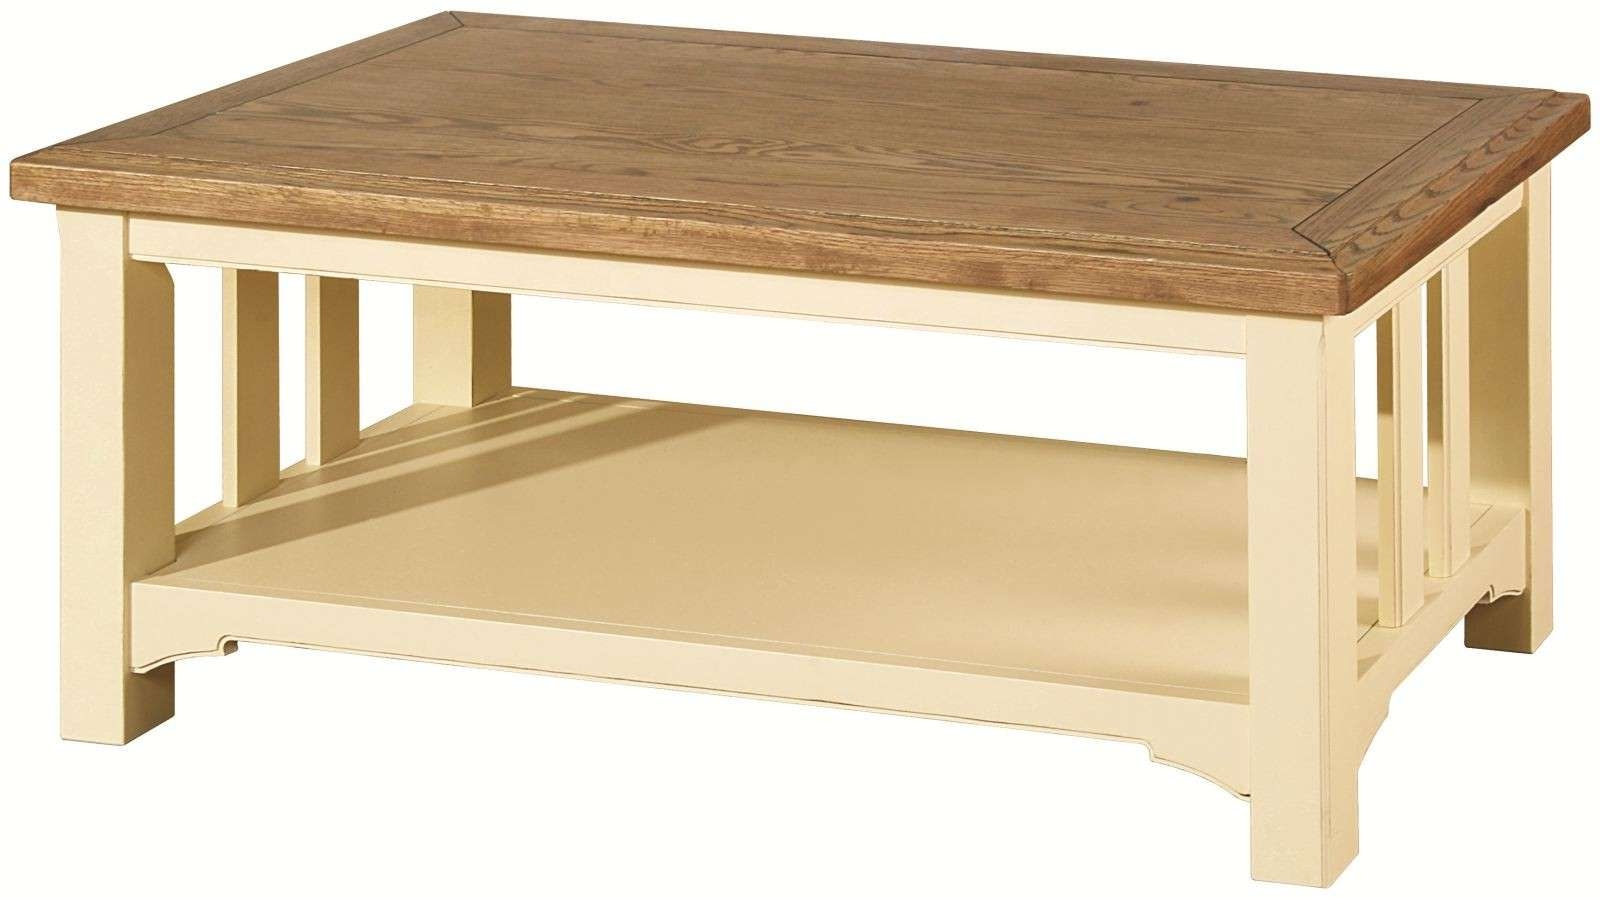 Top Coffee Table With Shelf Plans – Table With Shelves Underneath Intended For Most Recently Released Coffee Tables With Shelves (View 17 of 20)